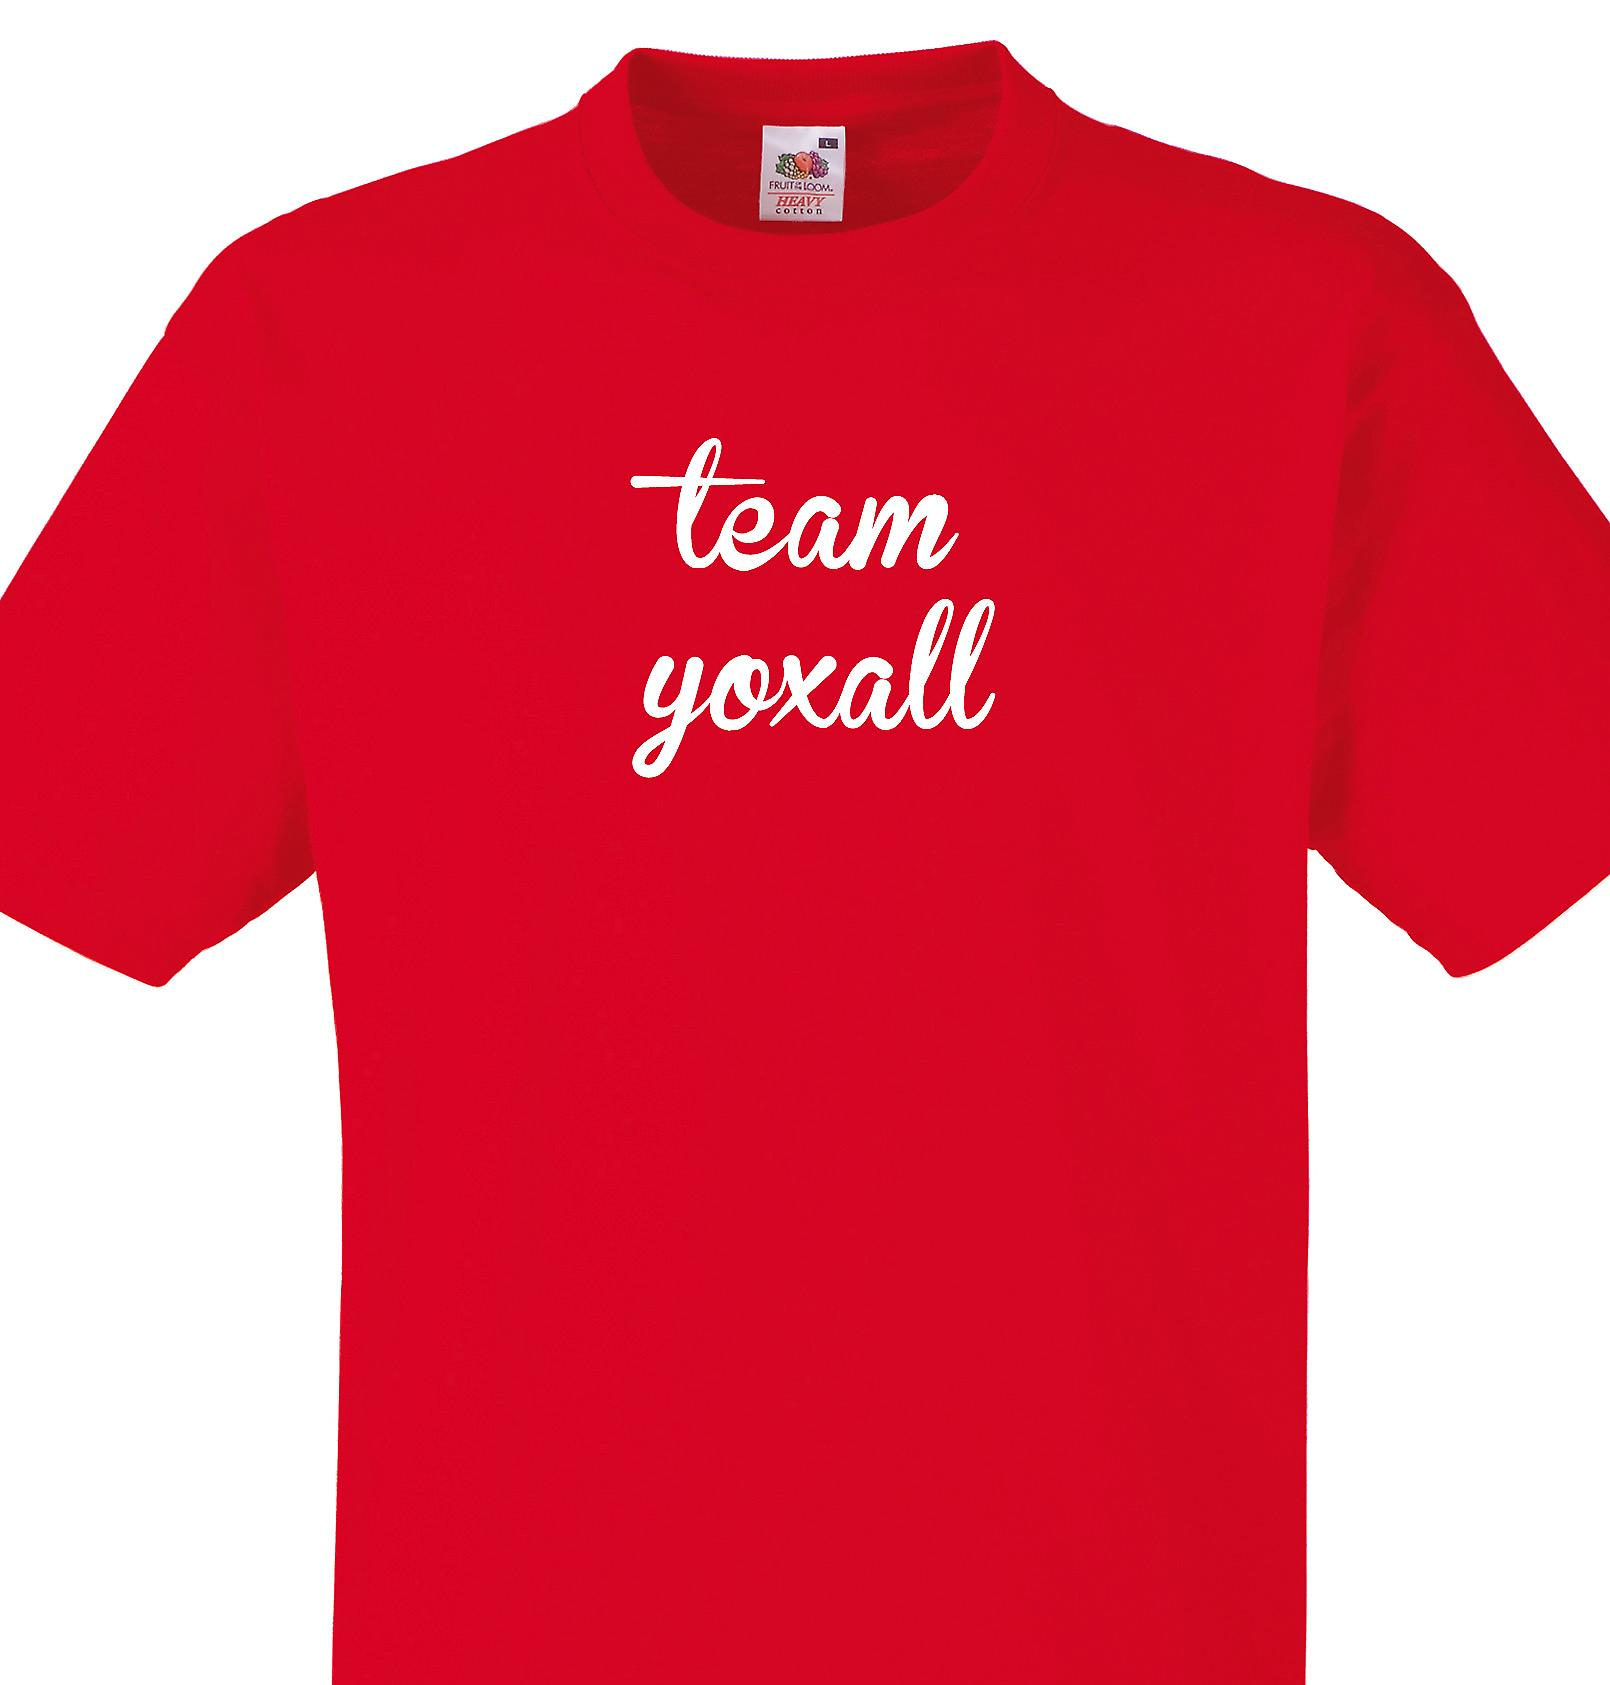 Team Yoxall Red T shirt